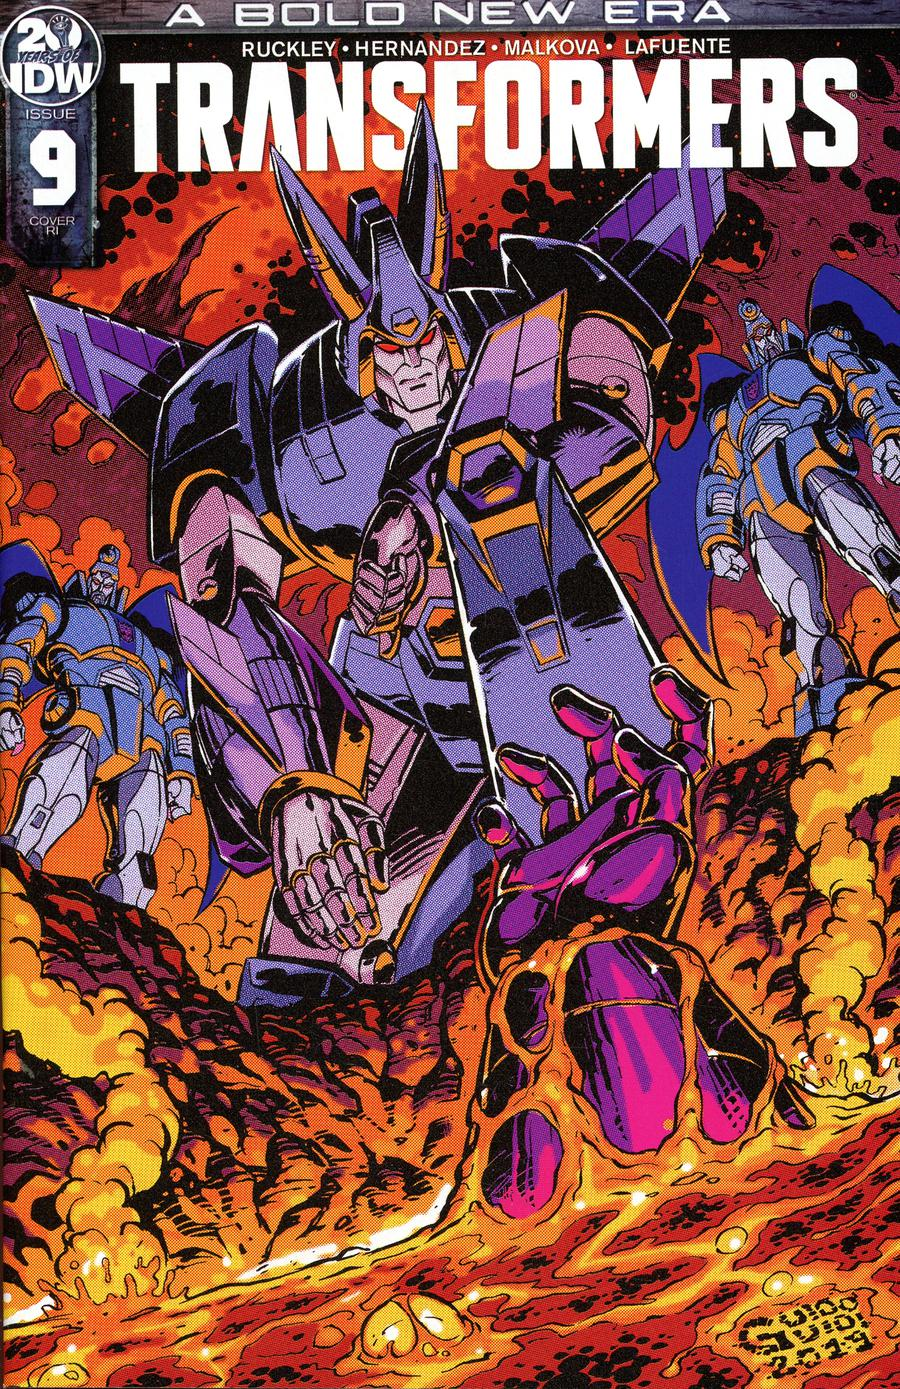 Transformers Vol 4 #9 Cover C Incentive Guido Guidi Variant Cover